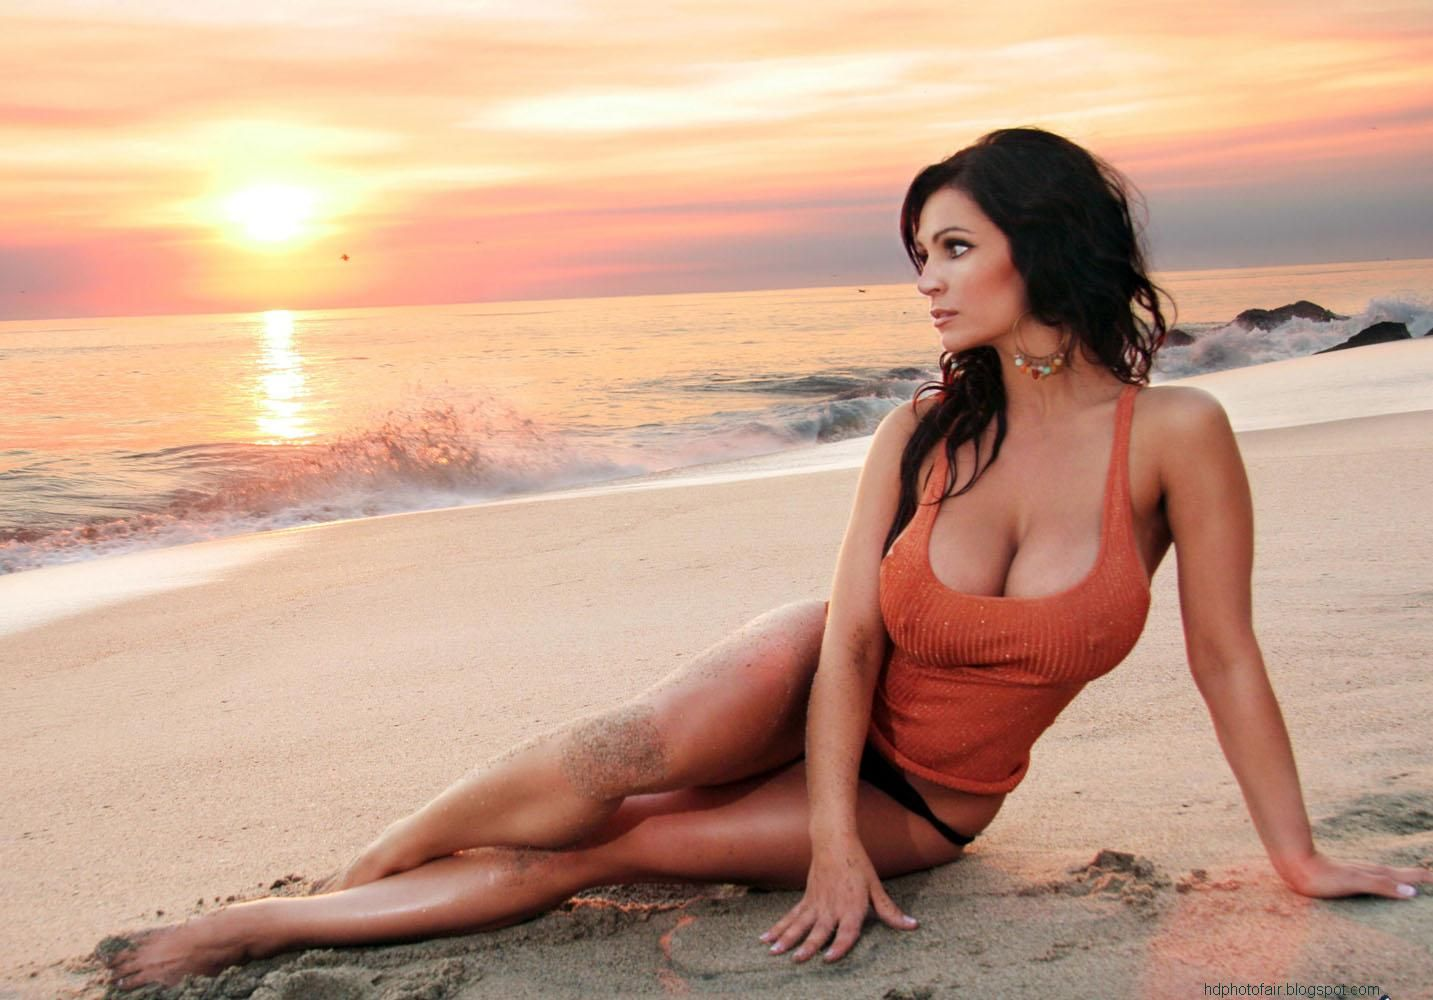 Miss bikini world denise milani